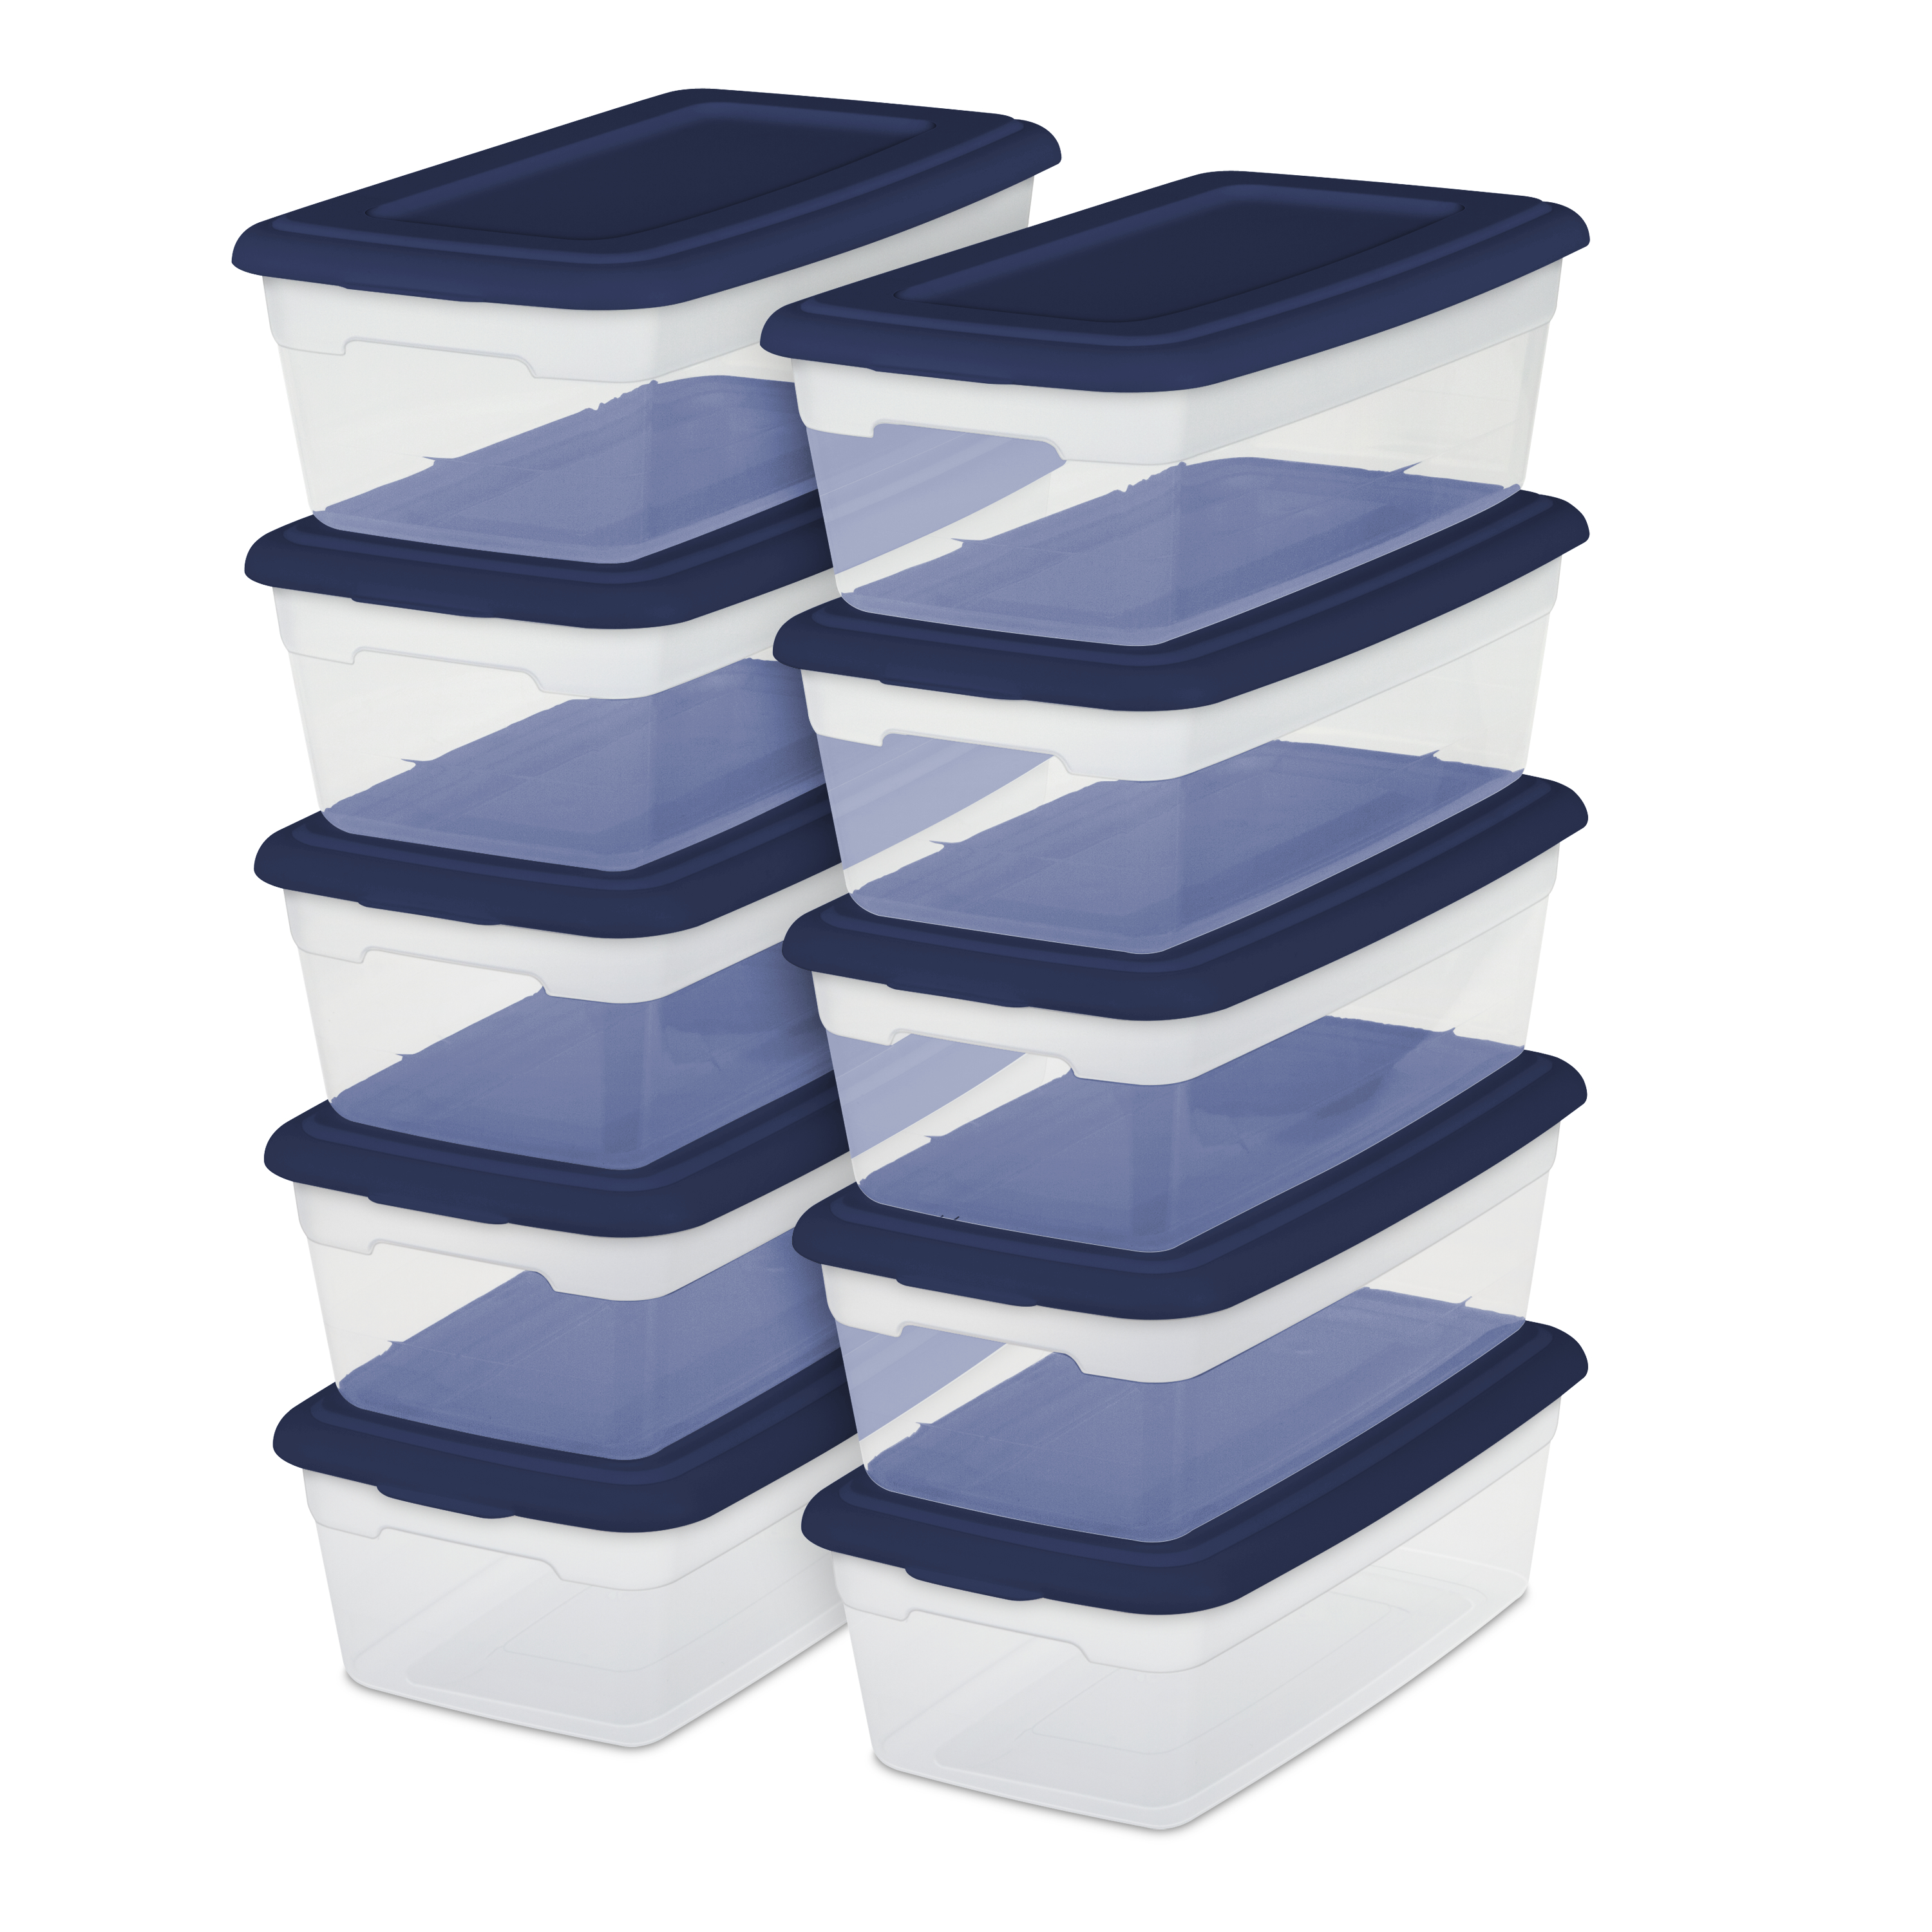 Sterilite Set/10 6 Qt Storage Boxes, Ultramarine (Available in Case of 4 or Single Unit)